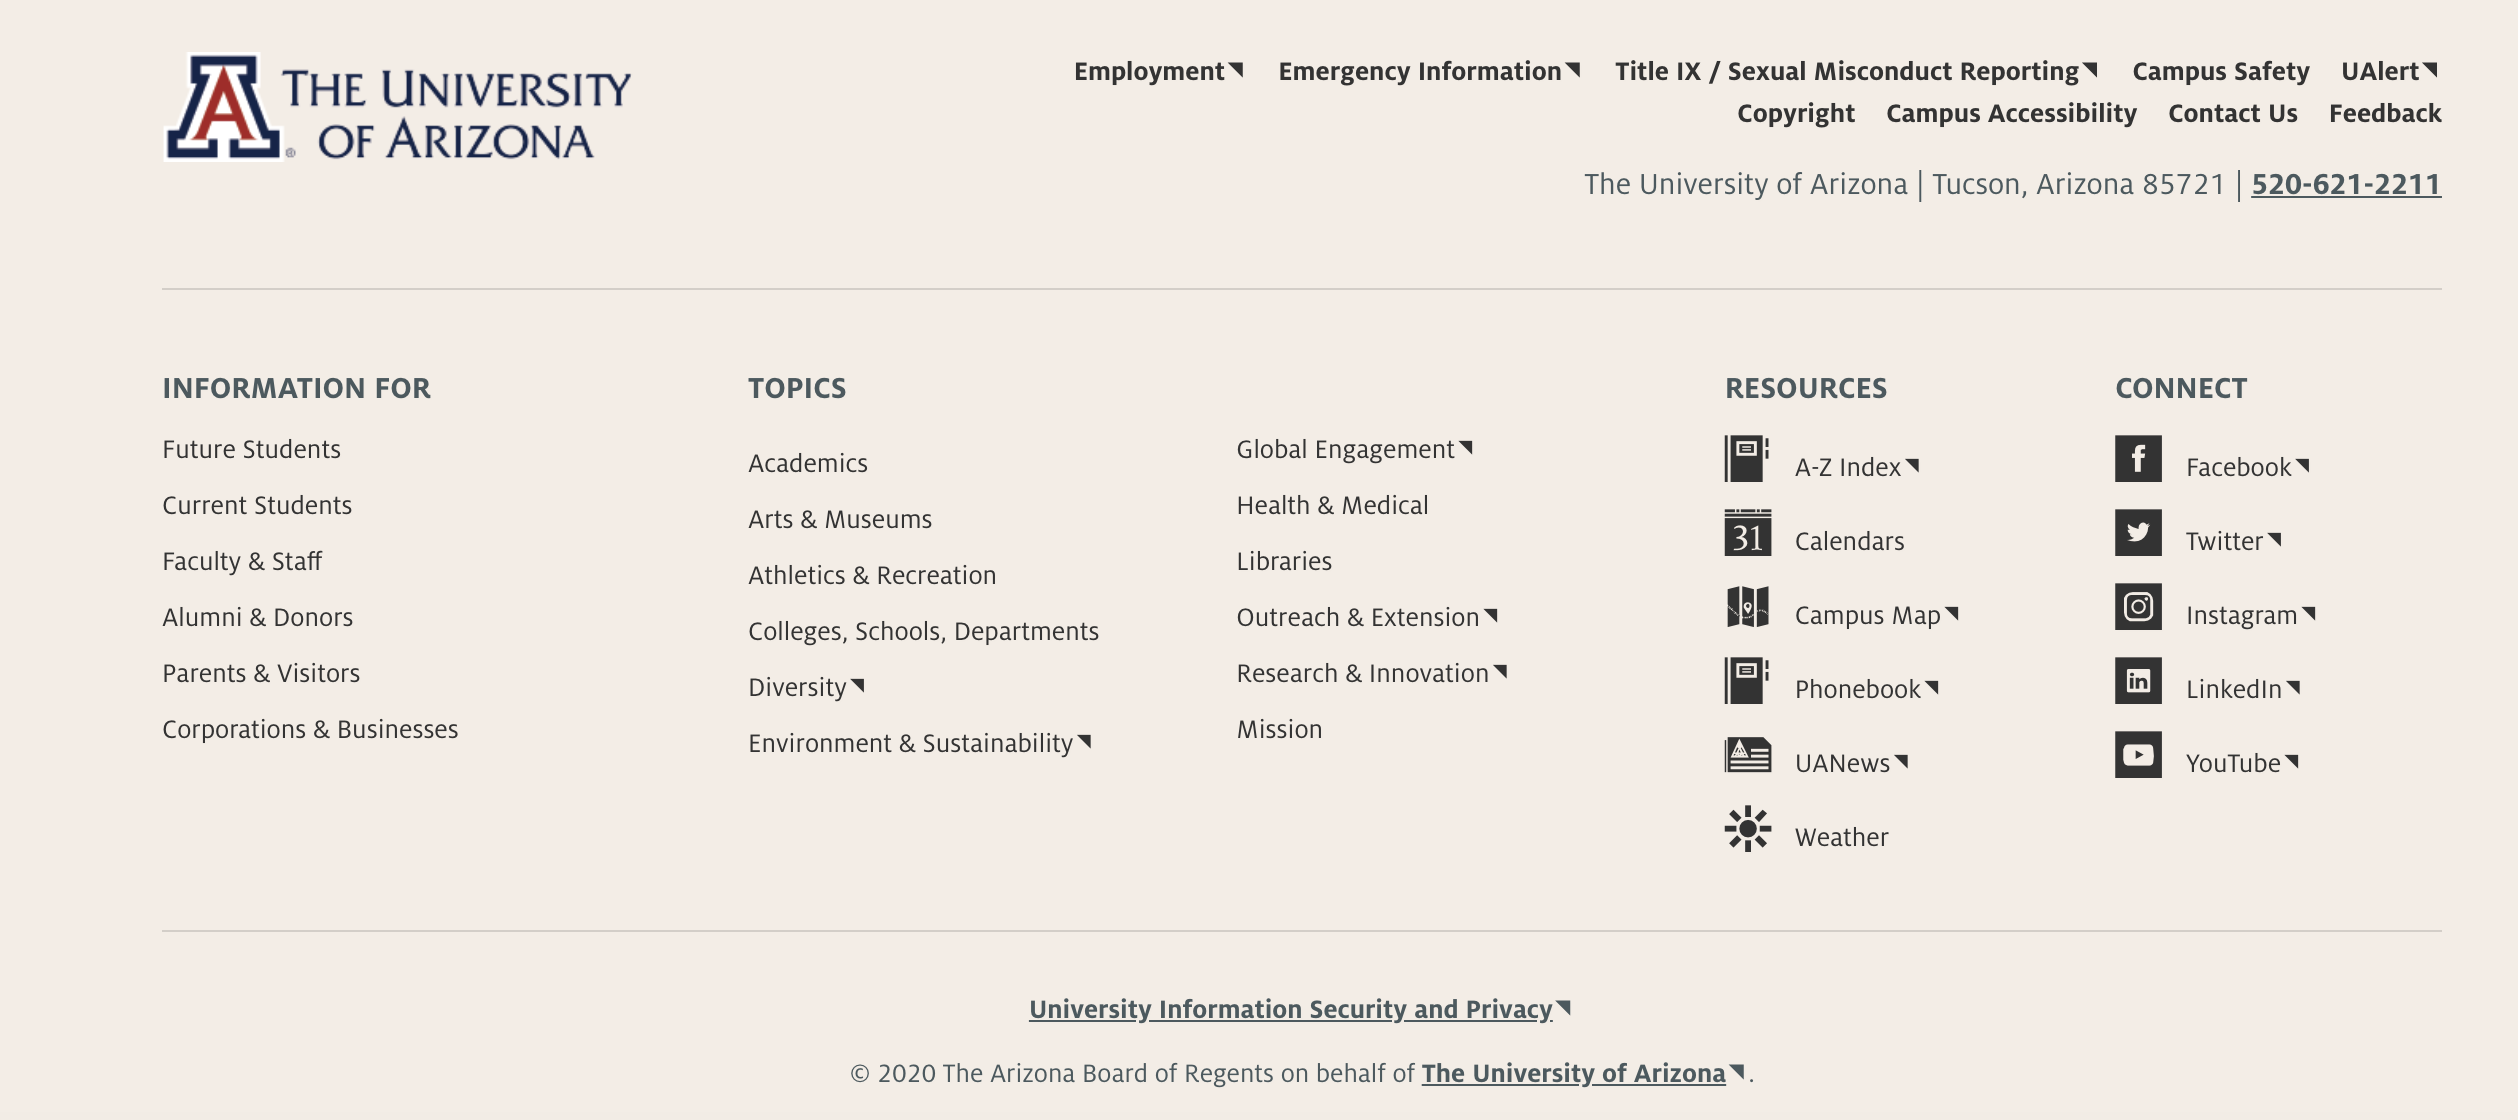 Image of the footer used on the University of Arizona website